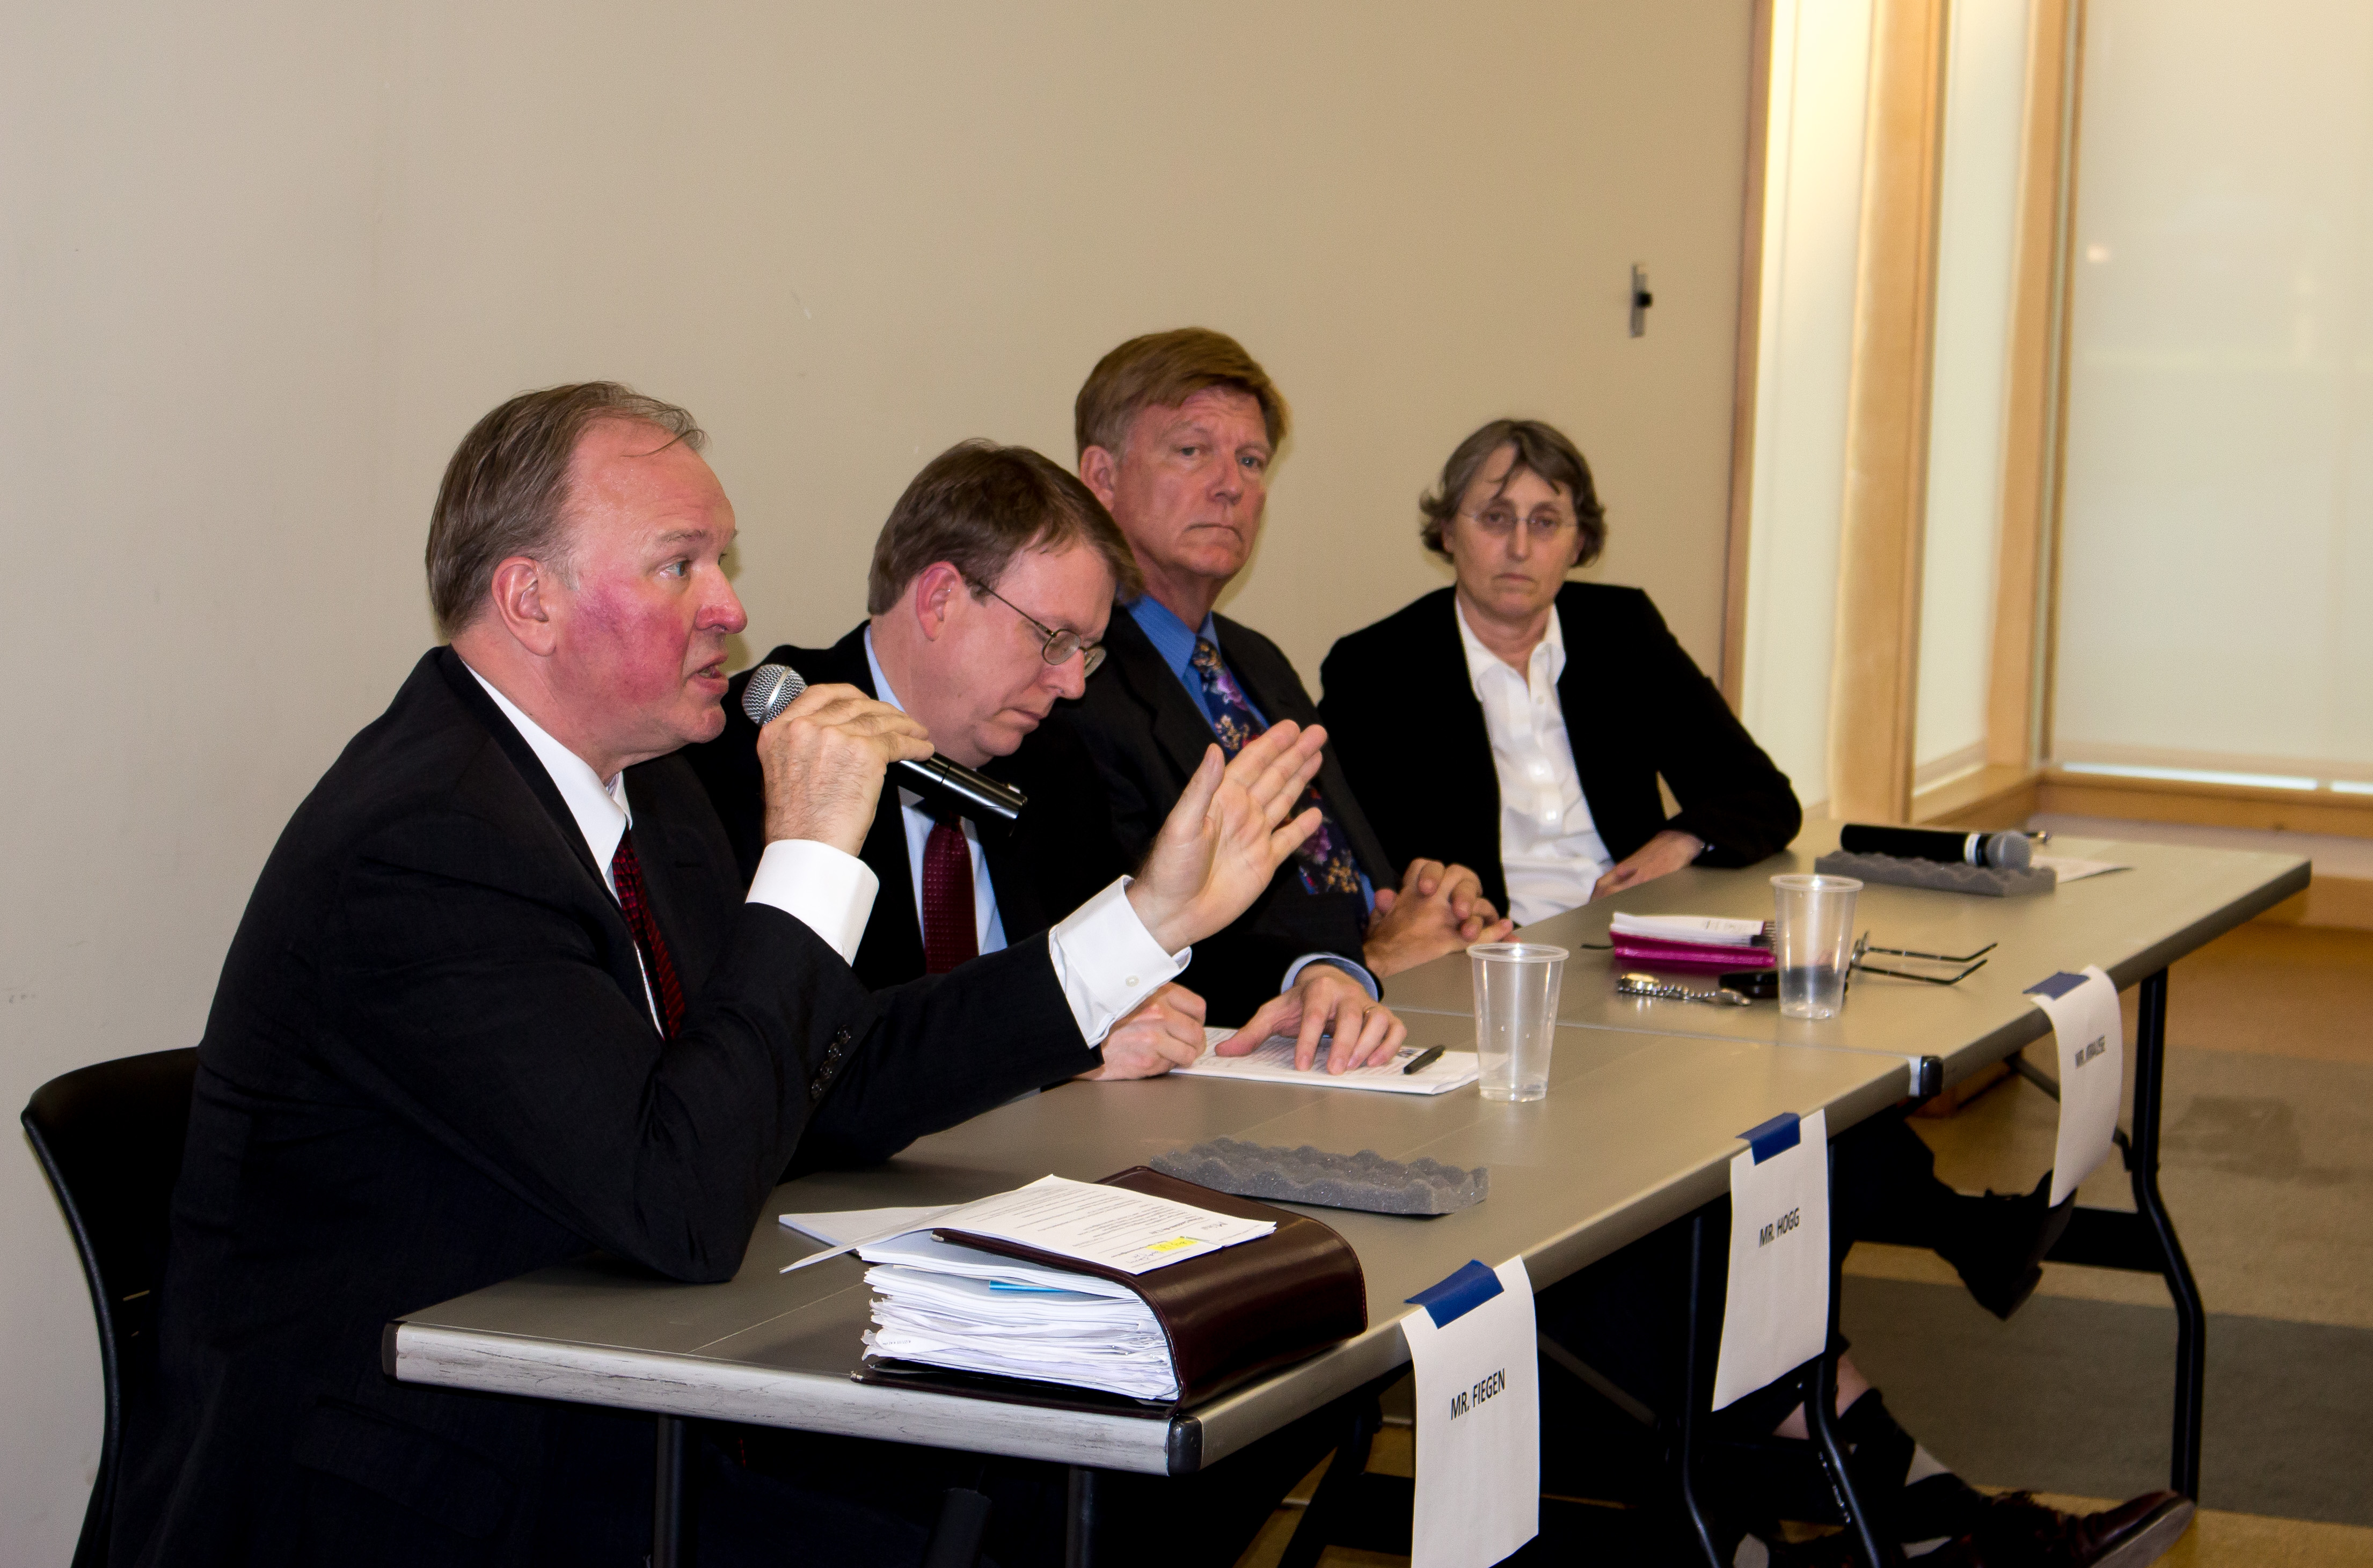 Tom Fiegen spoke on issues concerning Iowans during Thursday's forum. Photo by Michael Cummings.